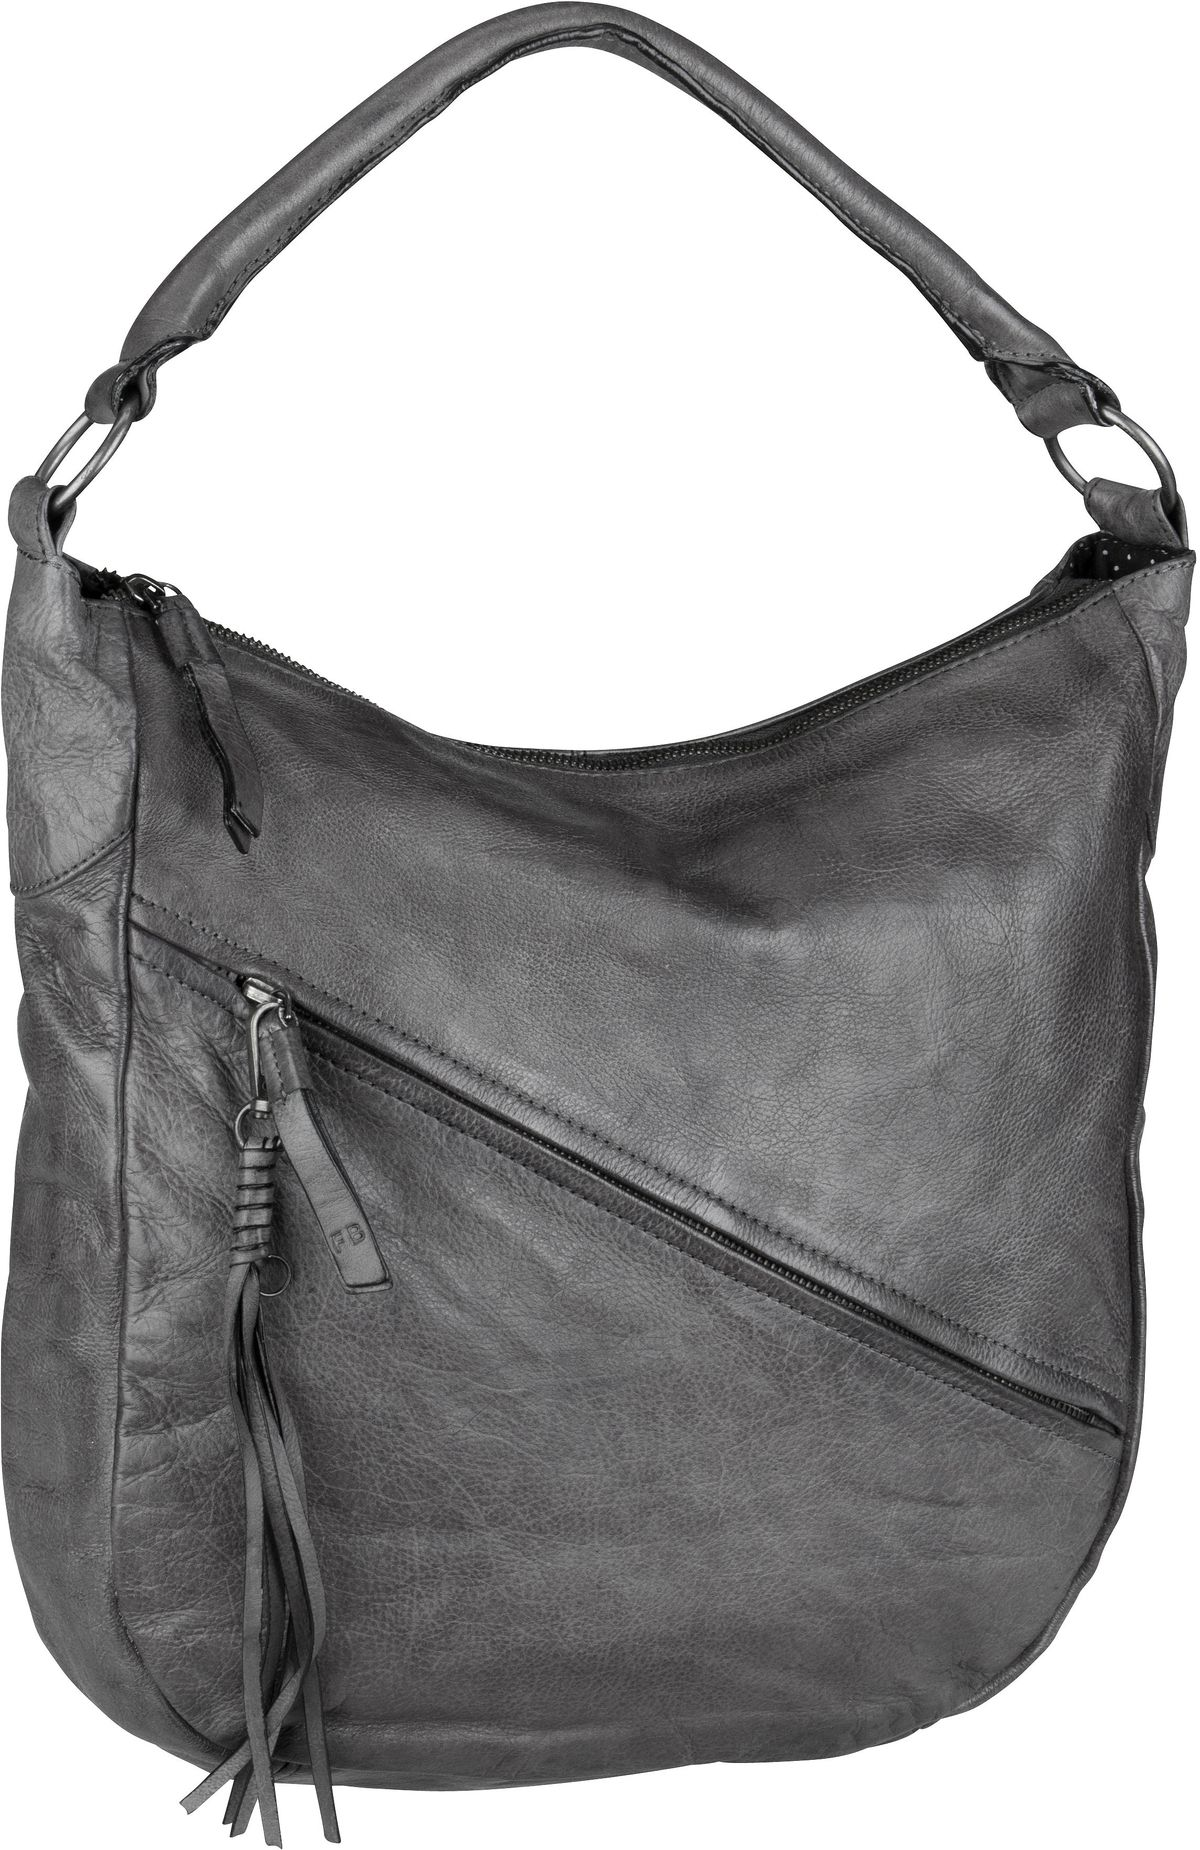 Handtasche Juno Iron Grey